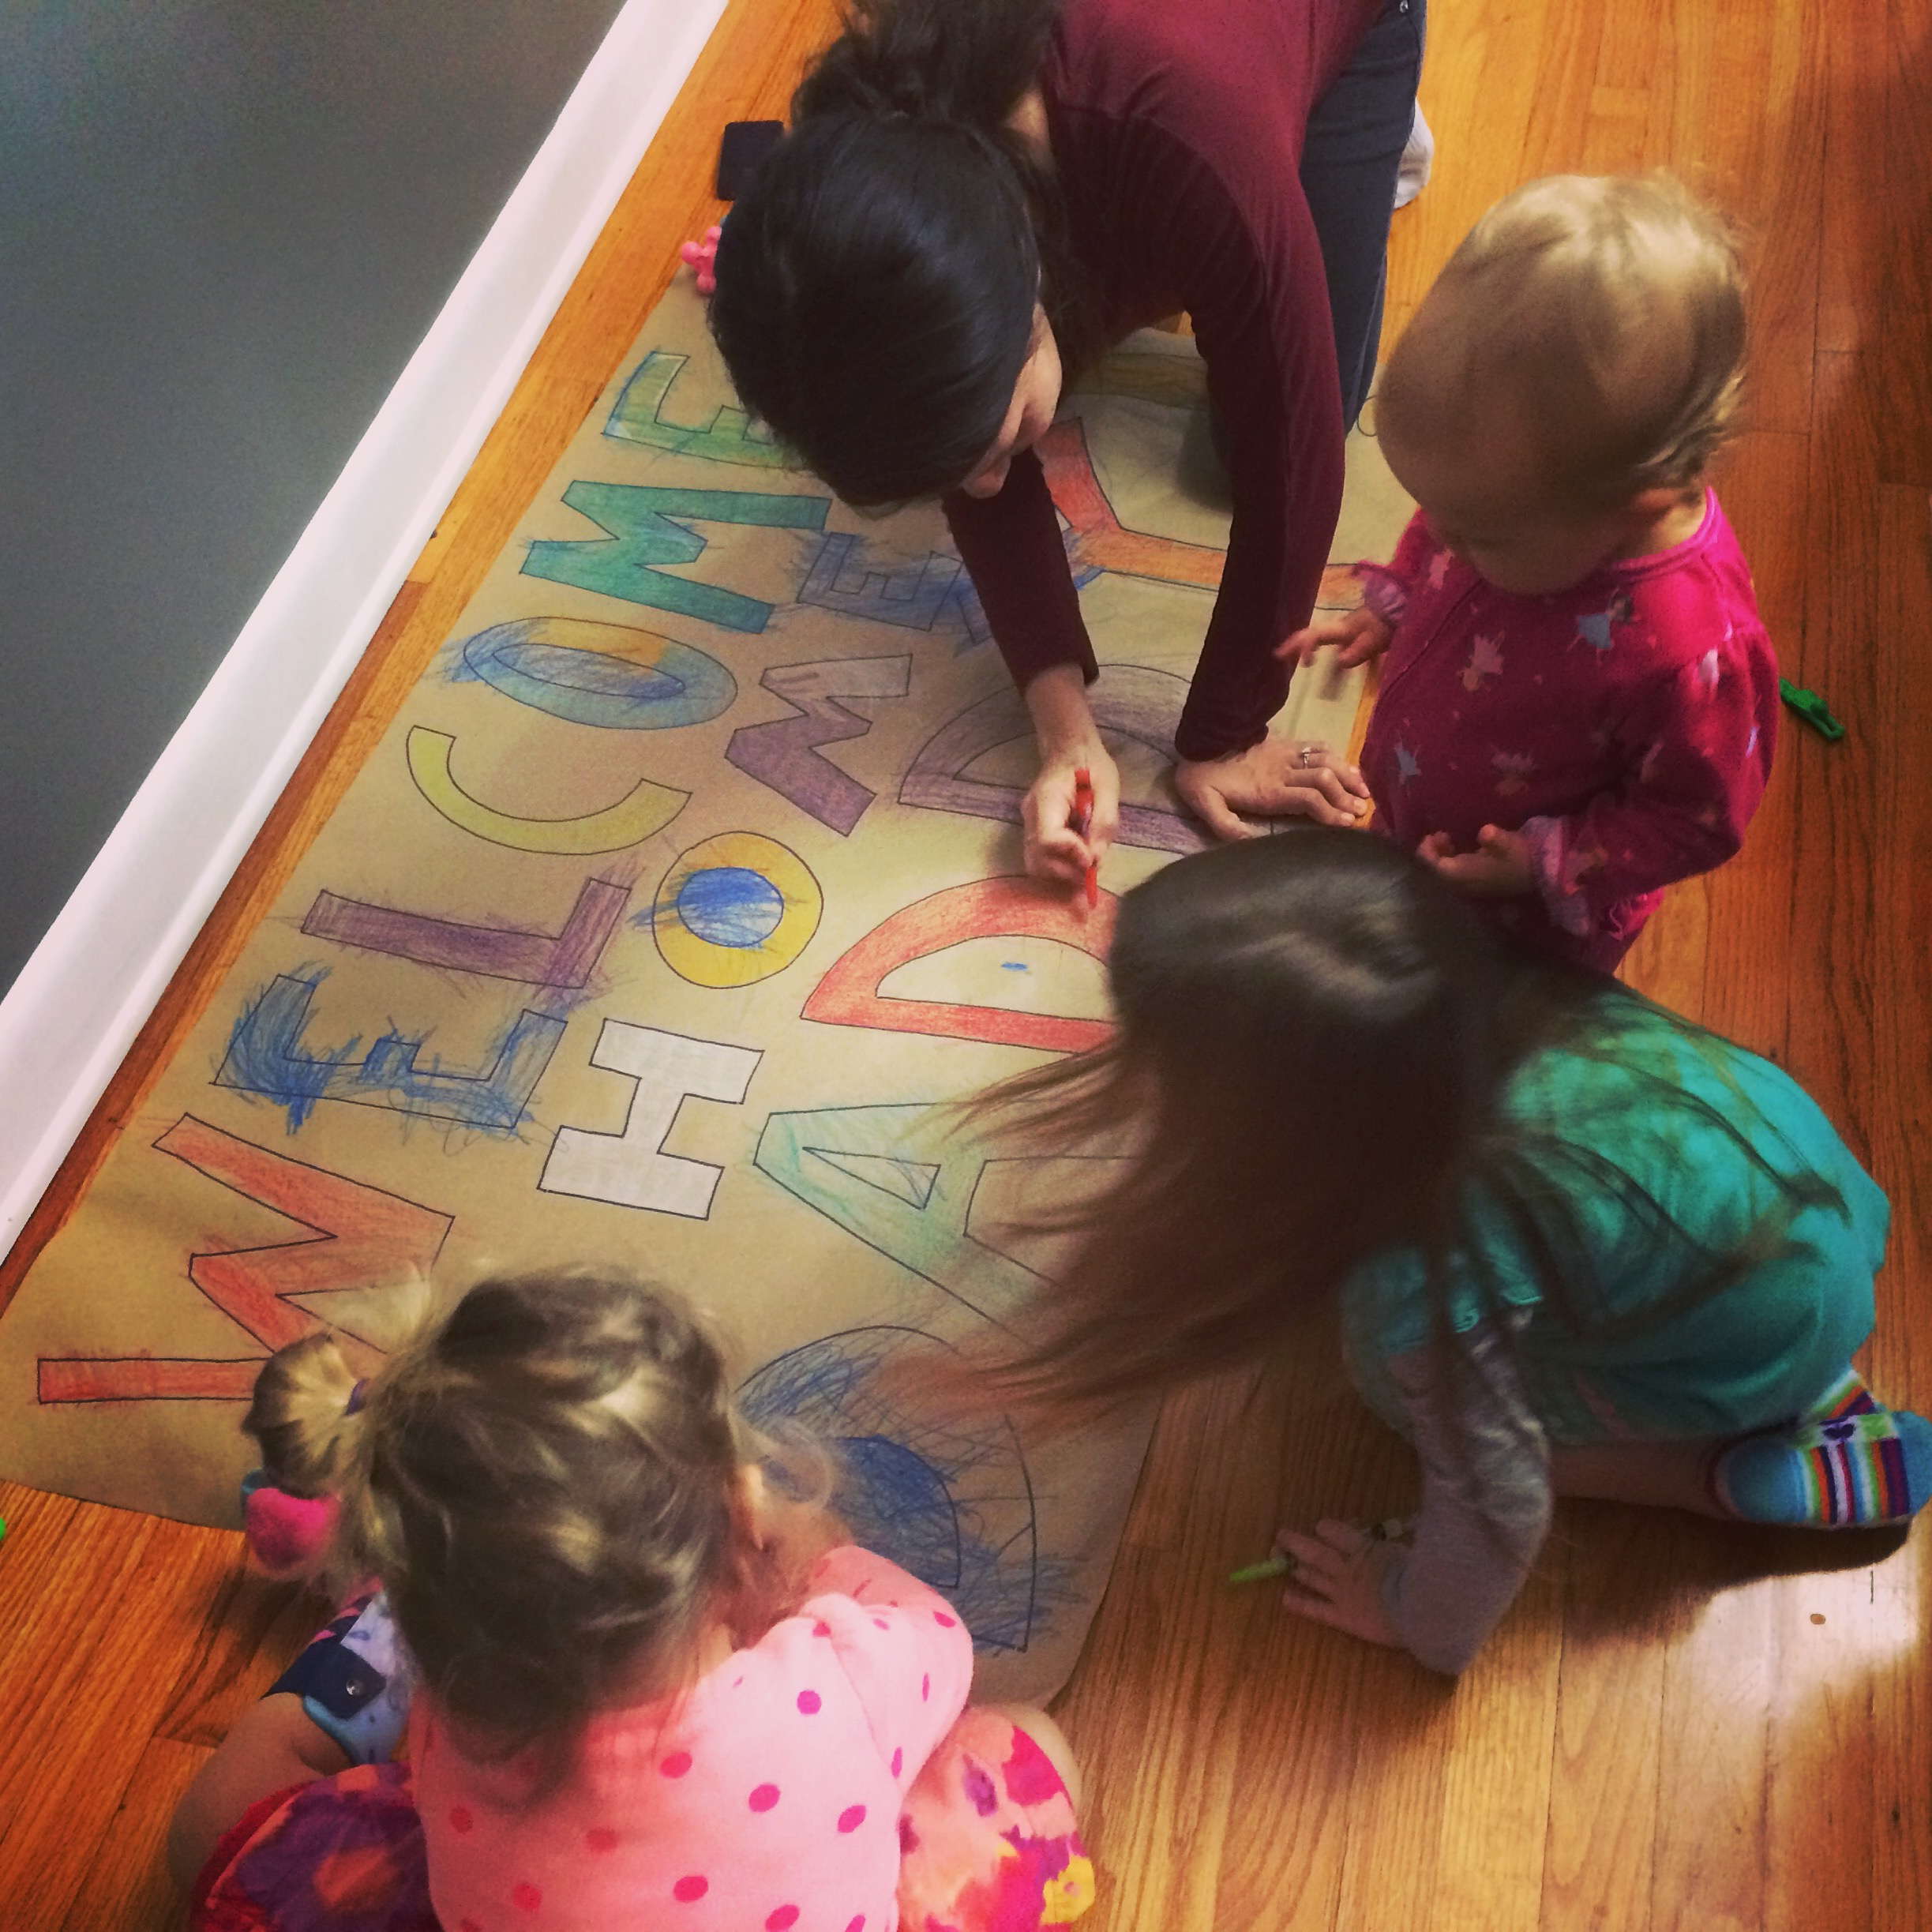 My girls with their Auntie preparing a sign for daddy, morning of his return.